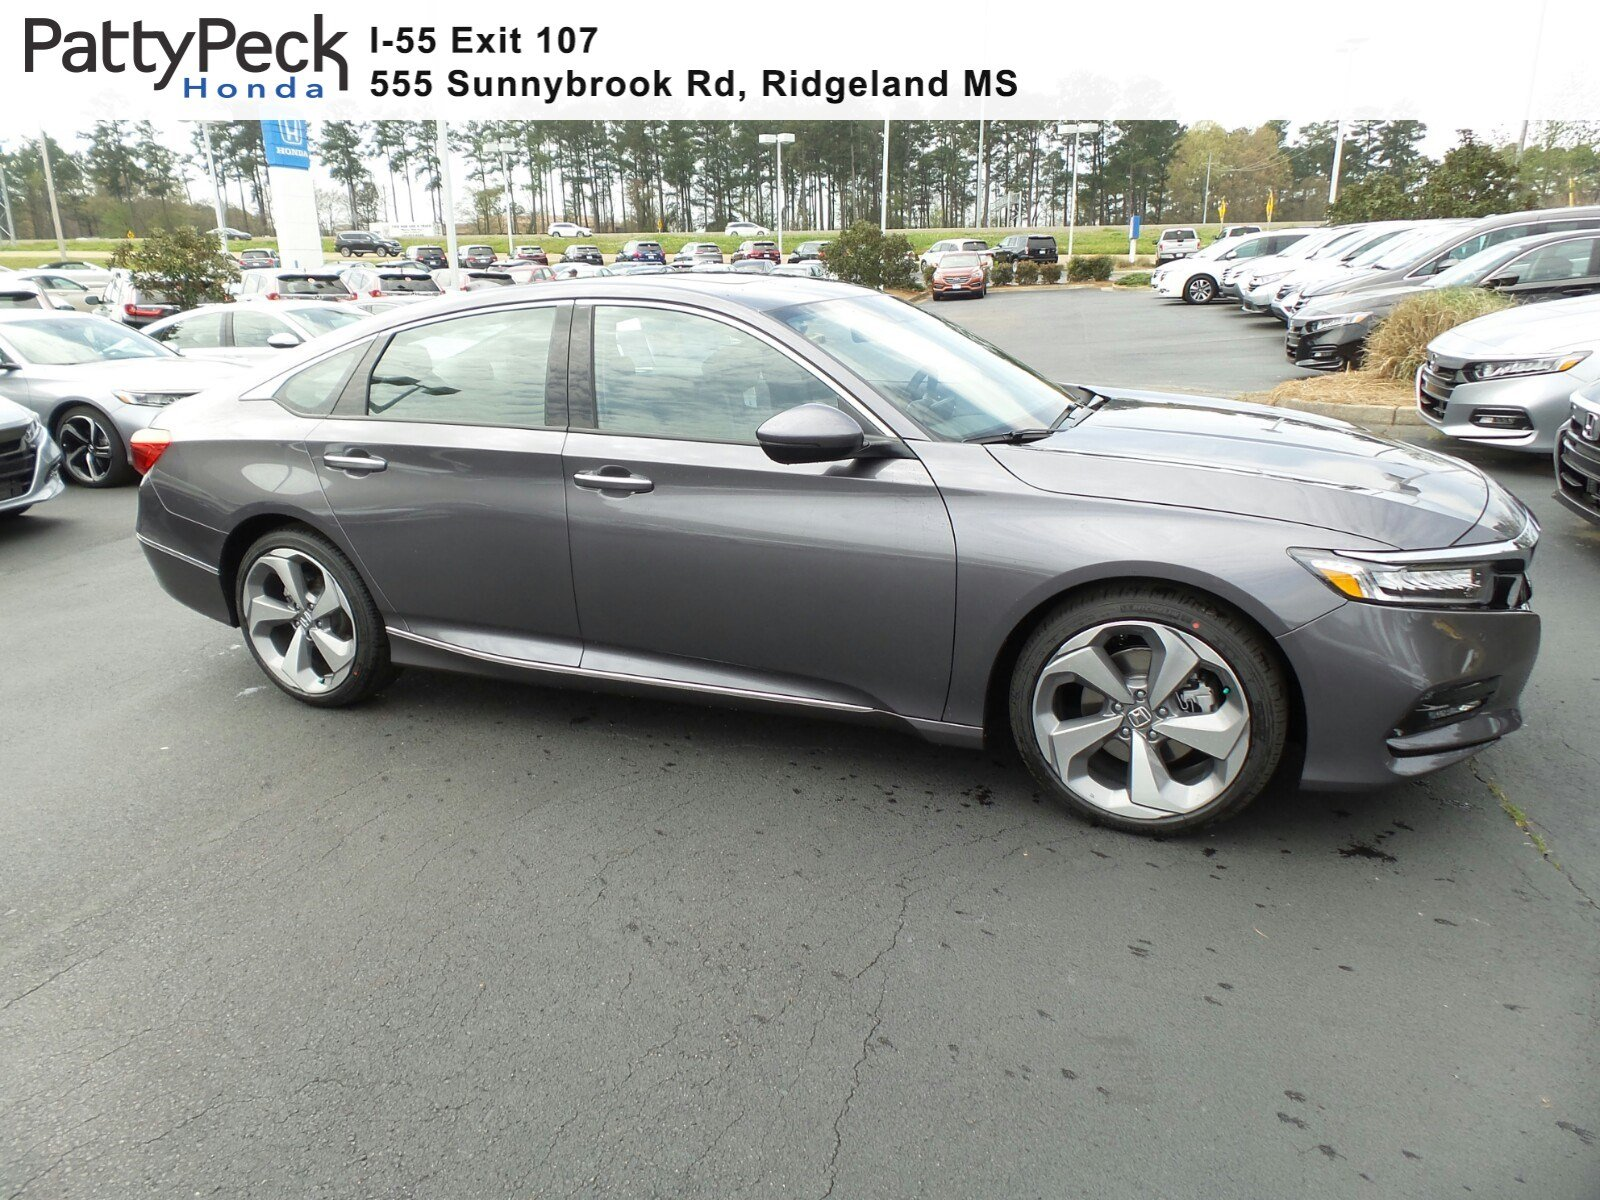 New 2018 Honda Accord Sedan Touring 2 0T 4dr Car in Ridgeland